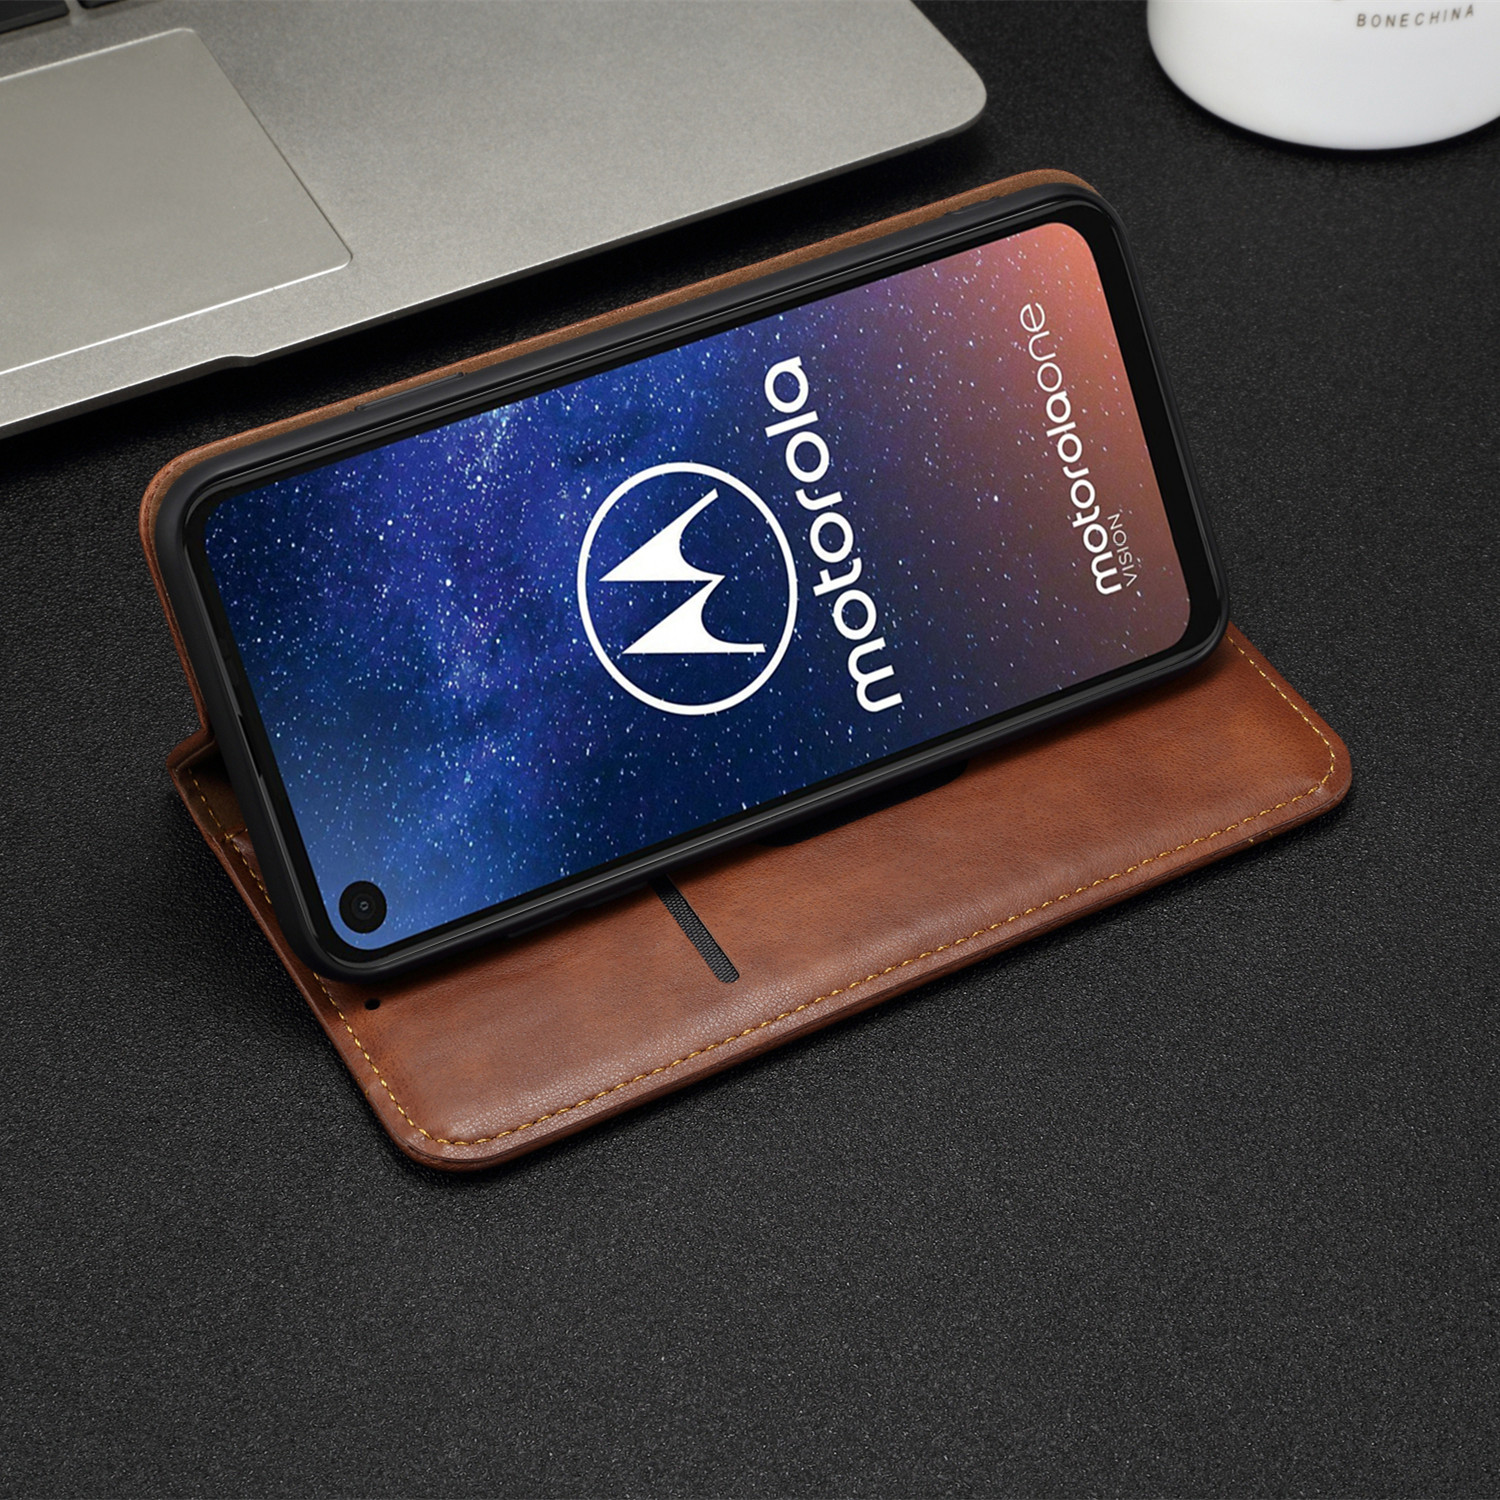 Premium Leather Case For Samsung Galaxy S10 Pro 5g Case Retro Magnetic Flip Wallet Cover For Samsung Galaxy S105g Vintage Case in Wallet Cases from Cellphones Telecommunications